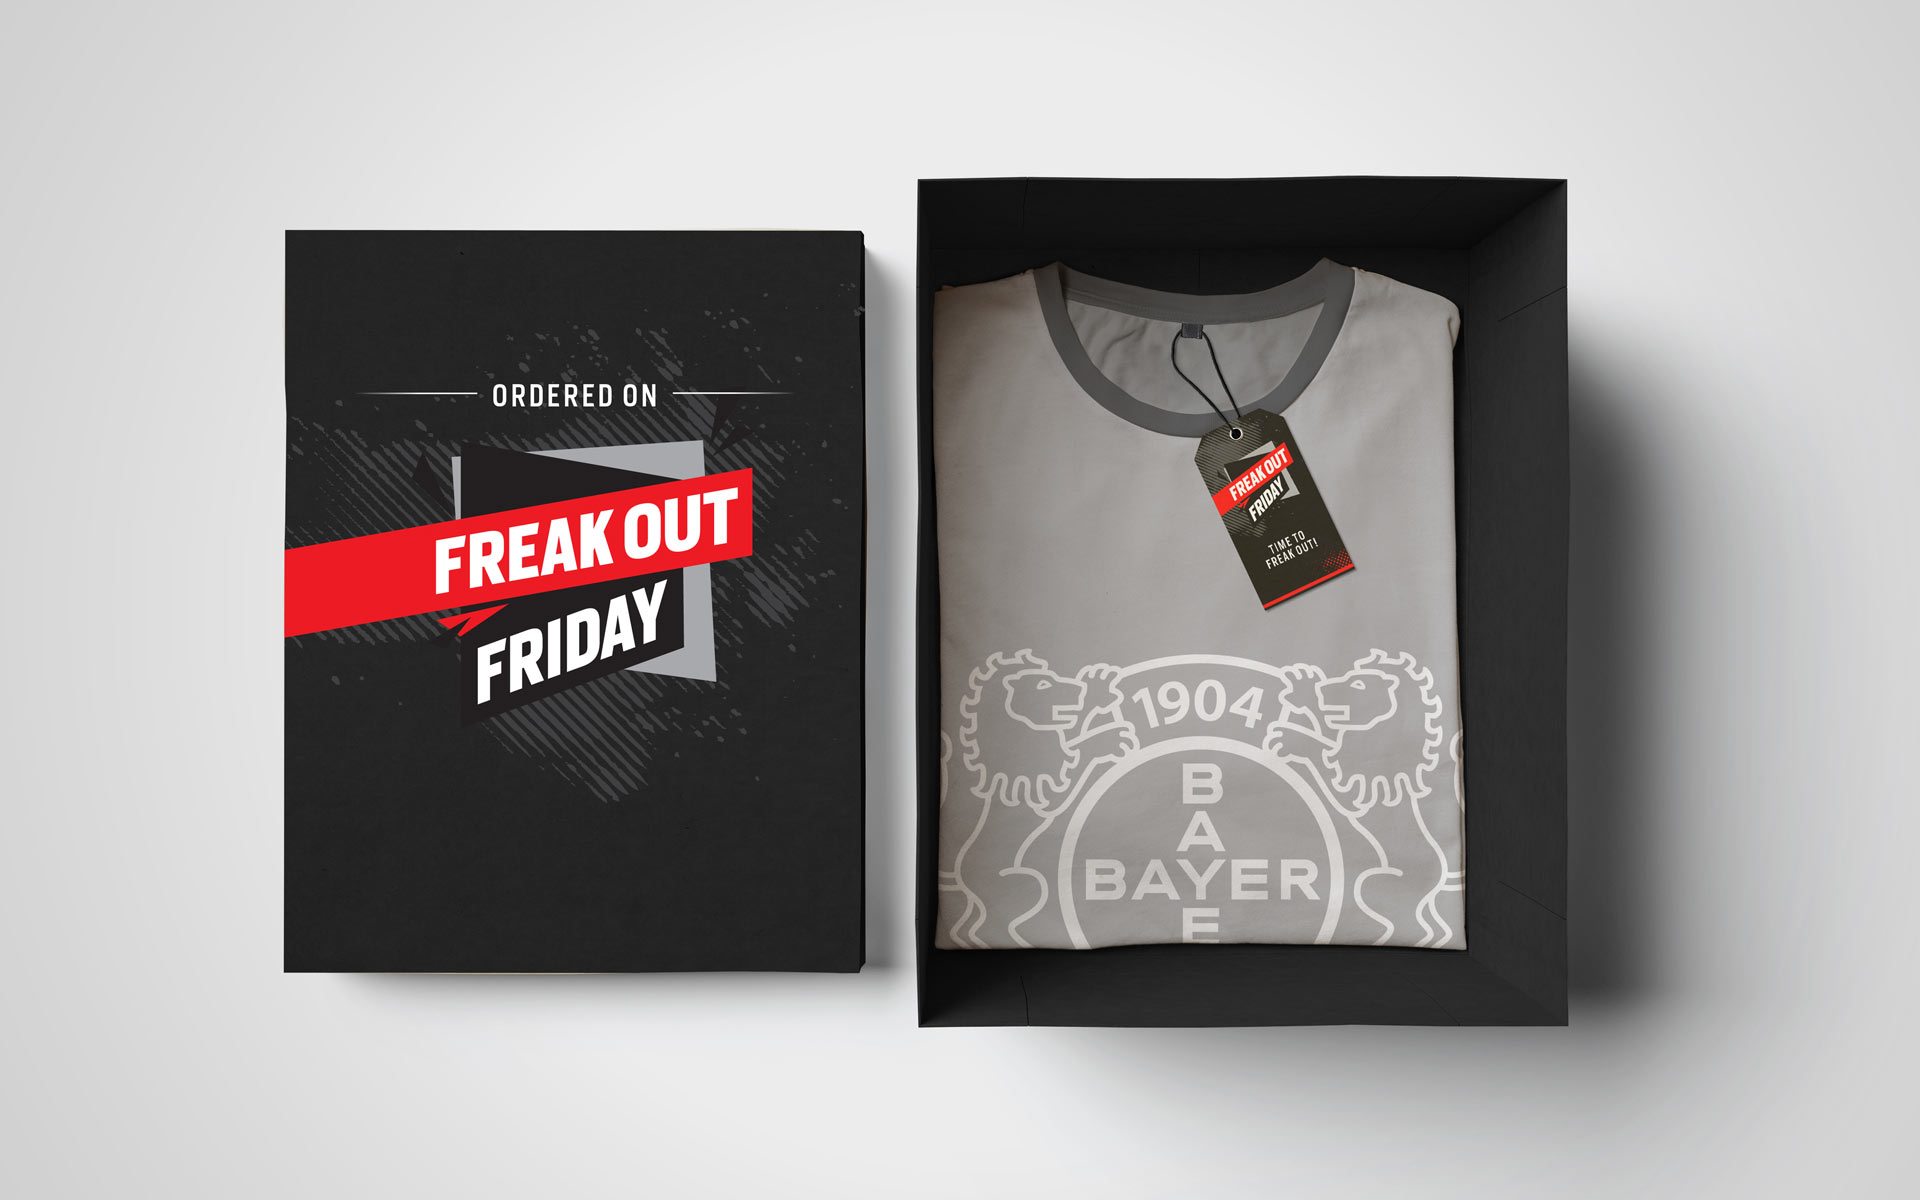 "Saleskampagne ""Freakout Friday"", Bayer 04 Leverkusen, Markenkommunikation, Corporate Design, Merchandising"